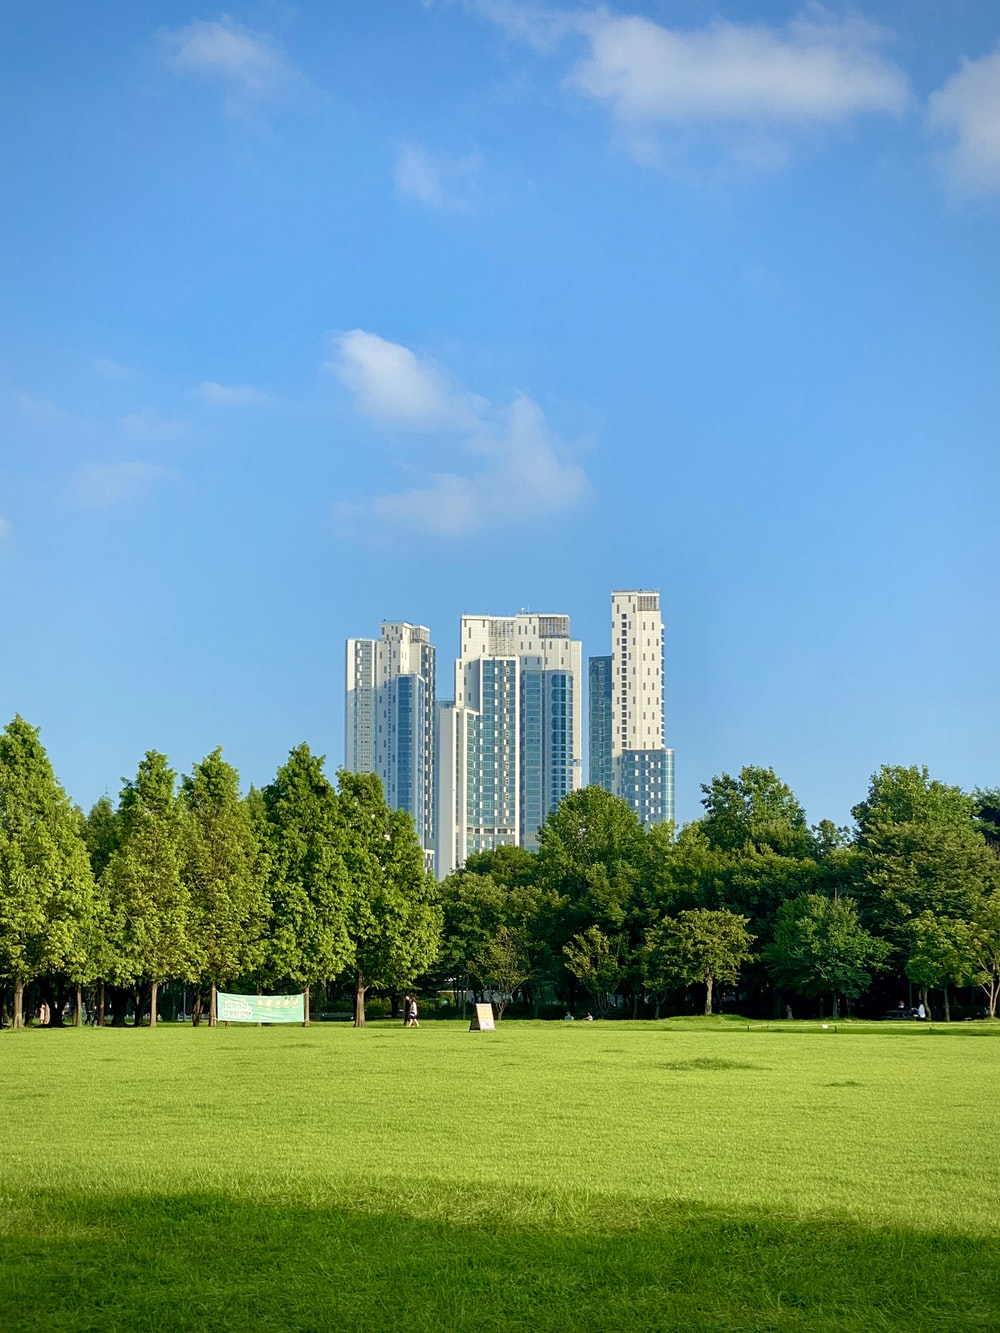 green grass field with trees and high rise buildings in distance